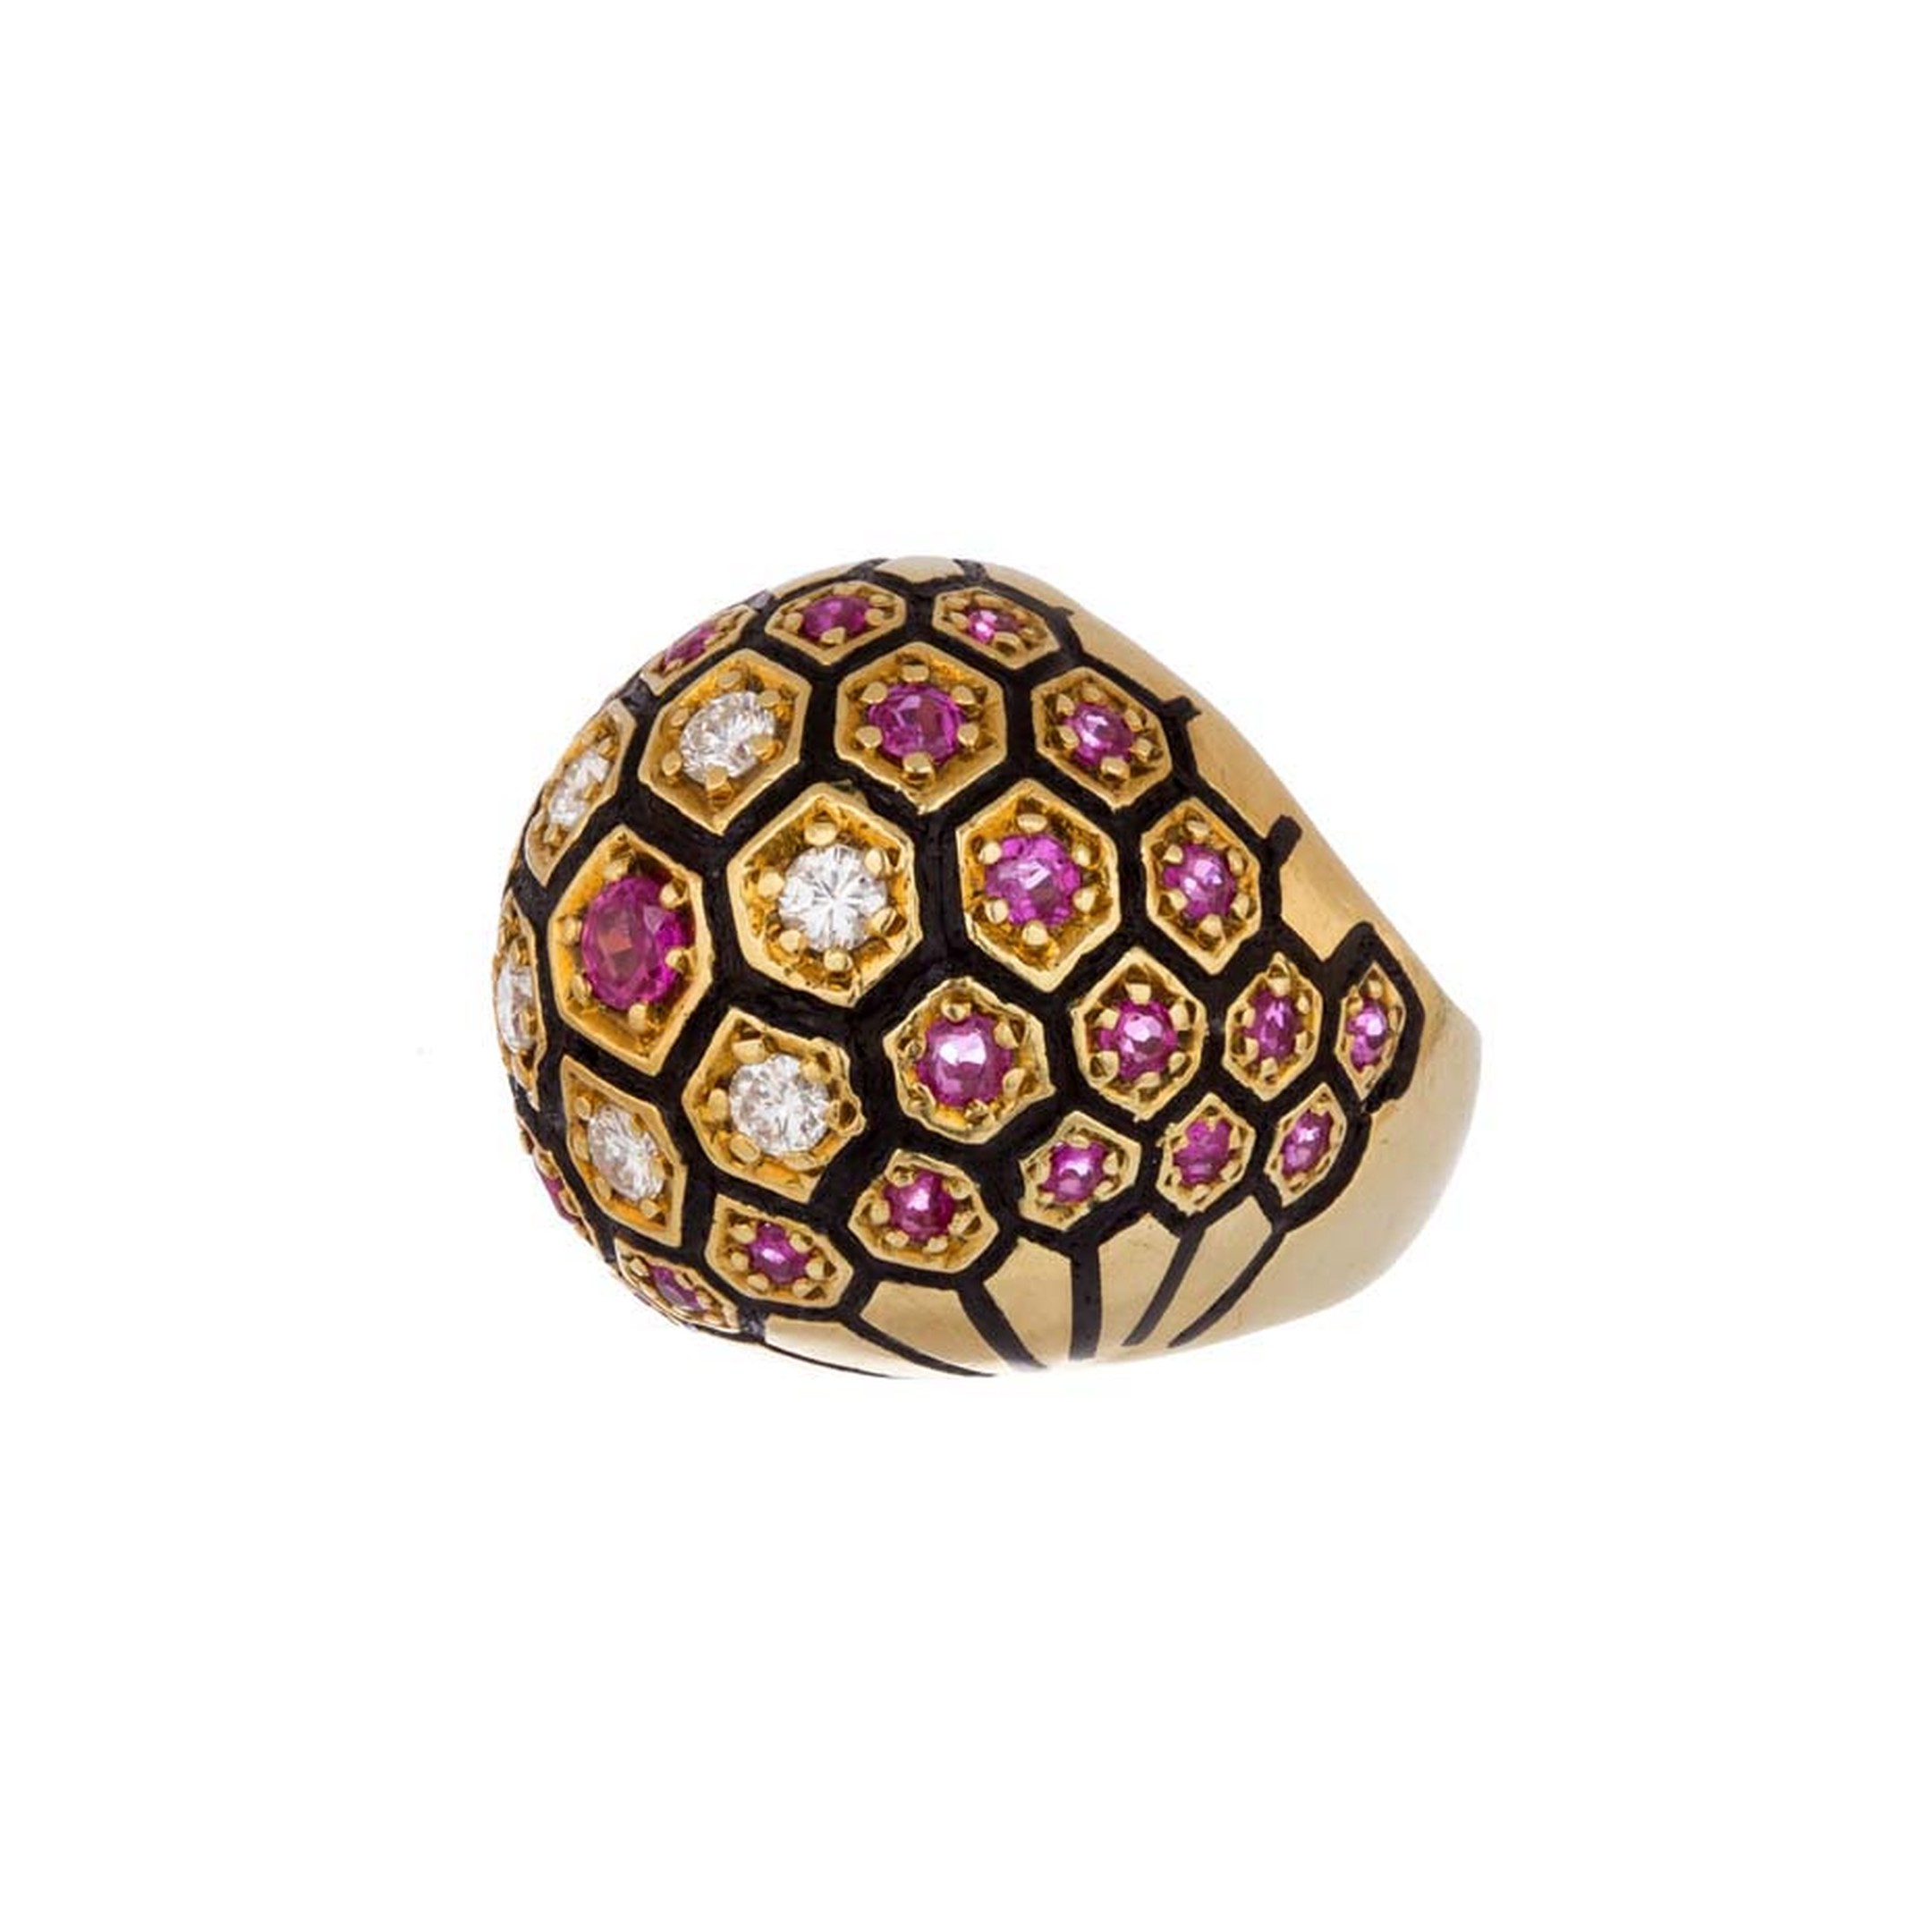 Broken English vintage domed yellow gold ring with white diamonds, rubies and black enamel ($7,600).